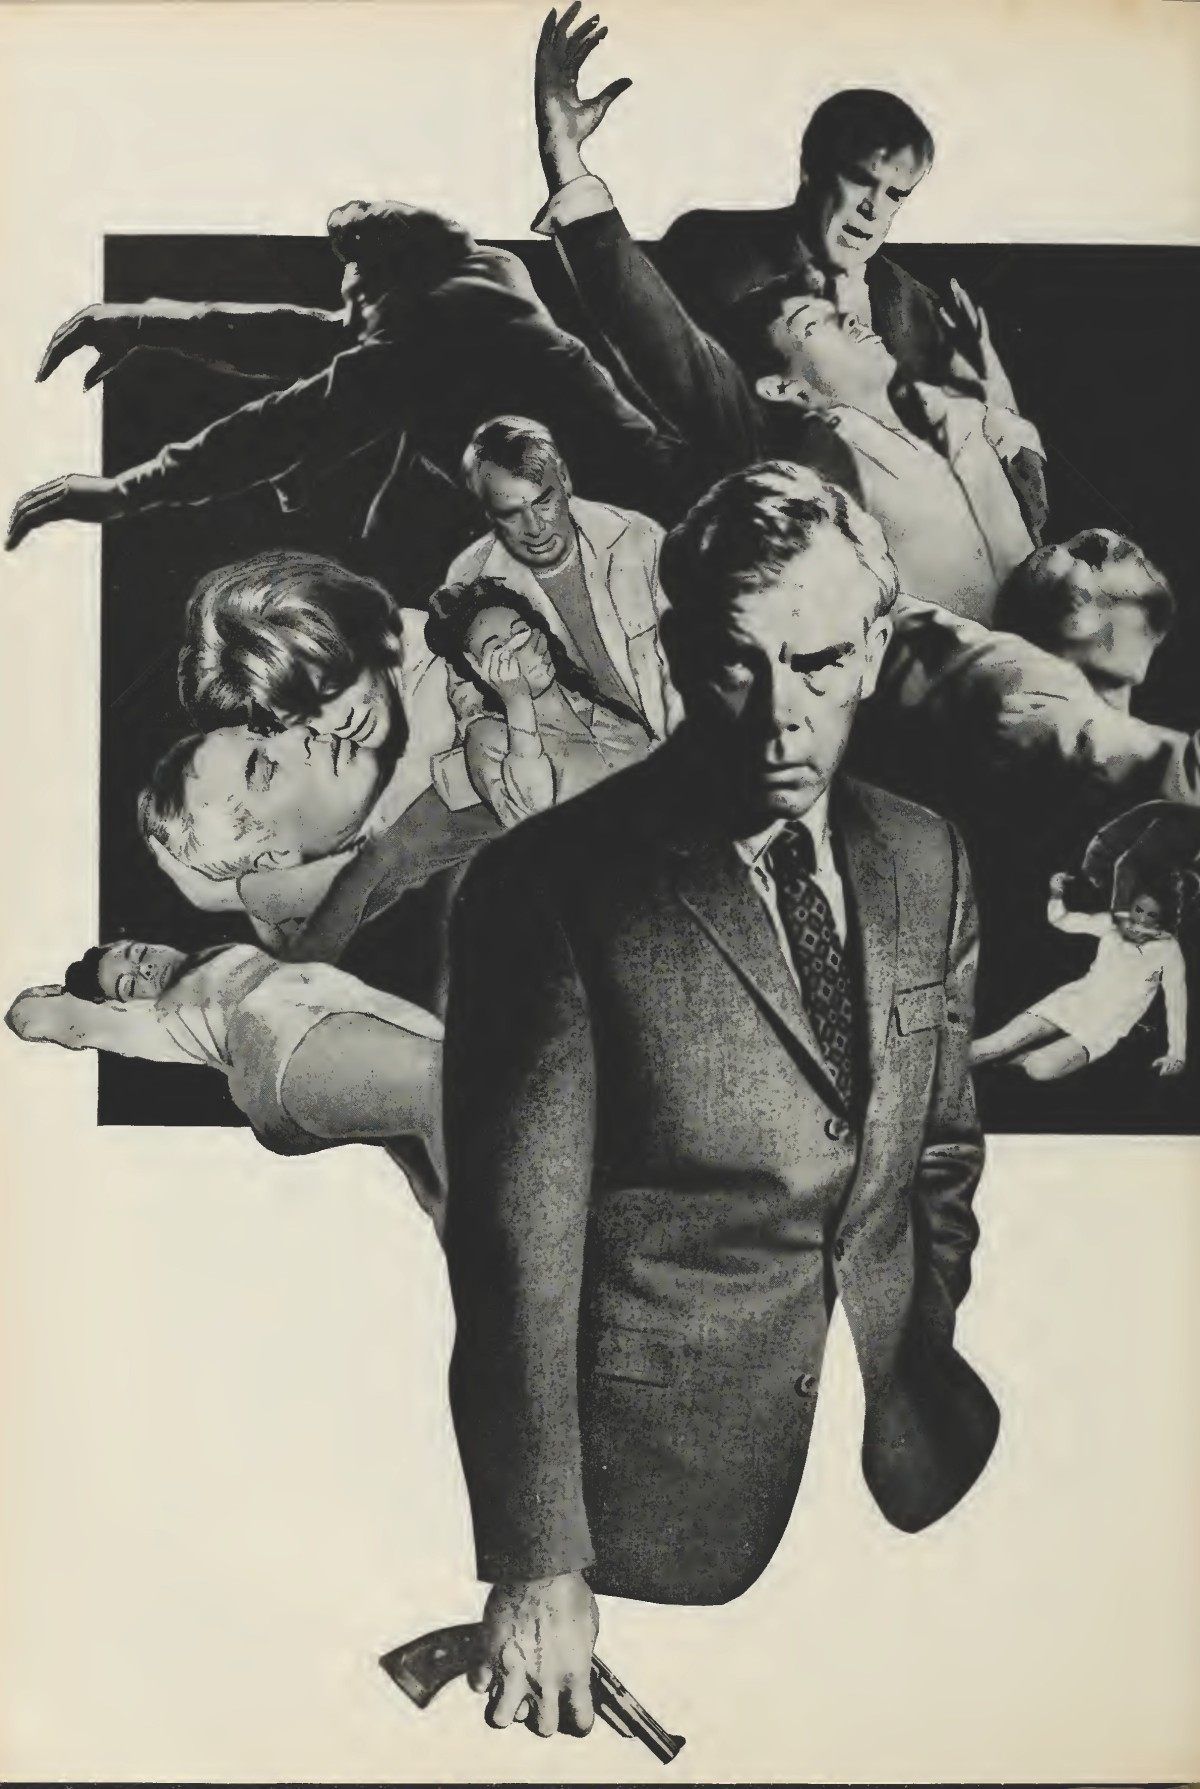 Point Blank (1967)****